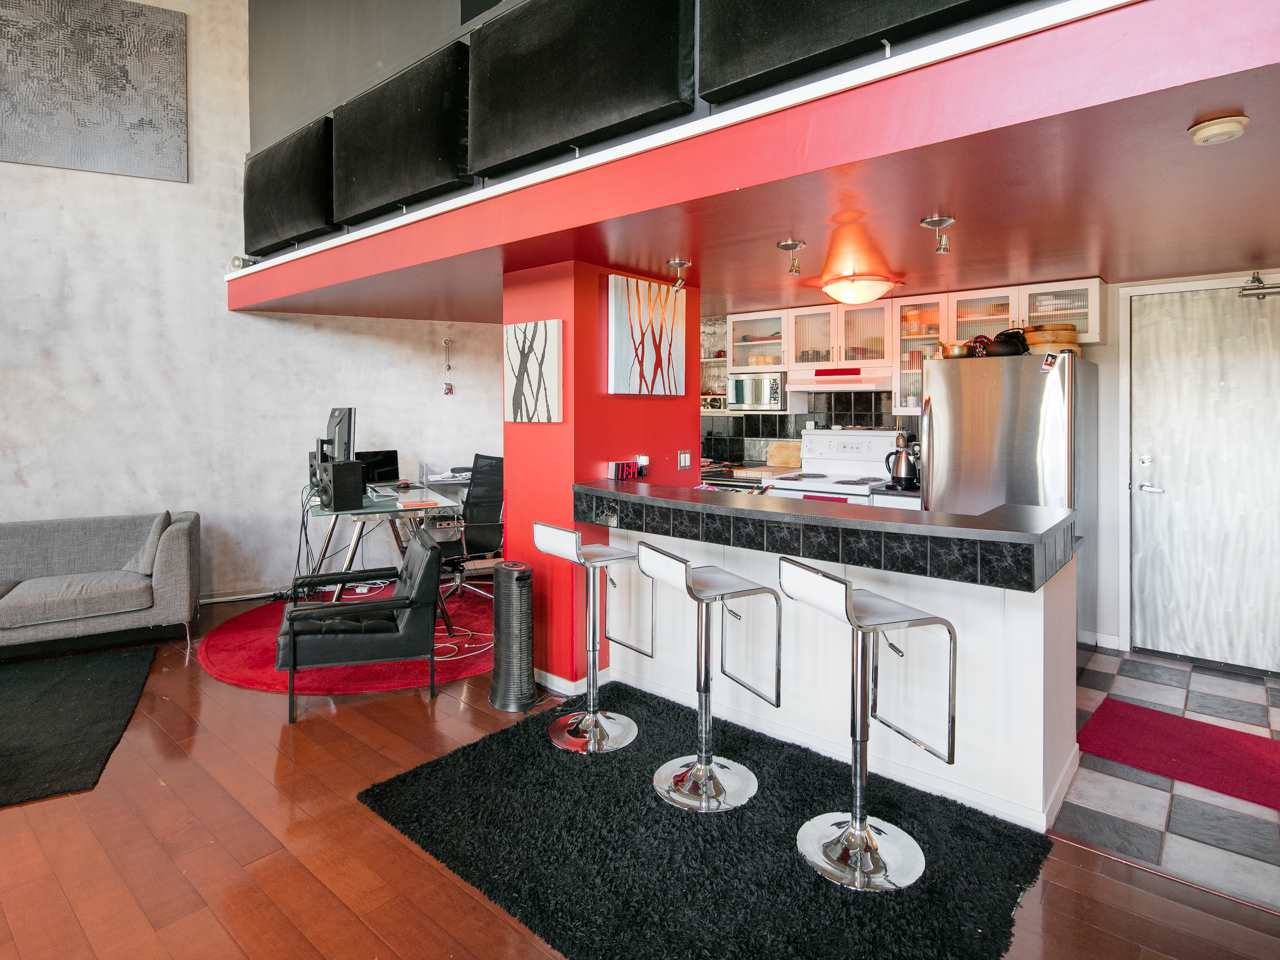 "Photo 3: 407 22 E CORDOVA Street in Vancouver: Downtown VE Condo for sale in ""Van Horne"" (Vancouver East)  : MLS(r) # R2163829"